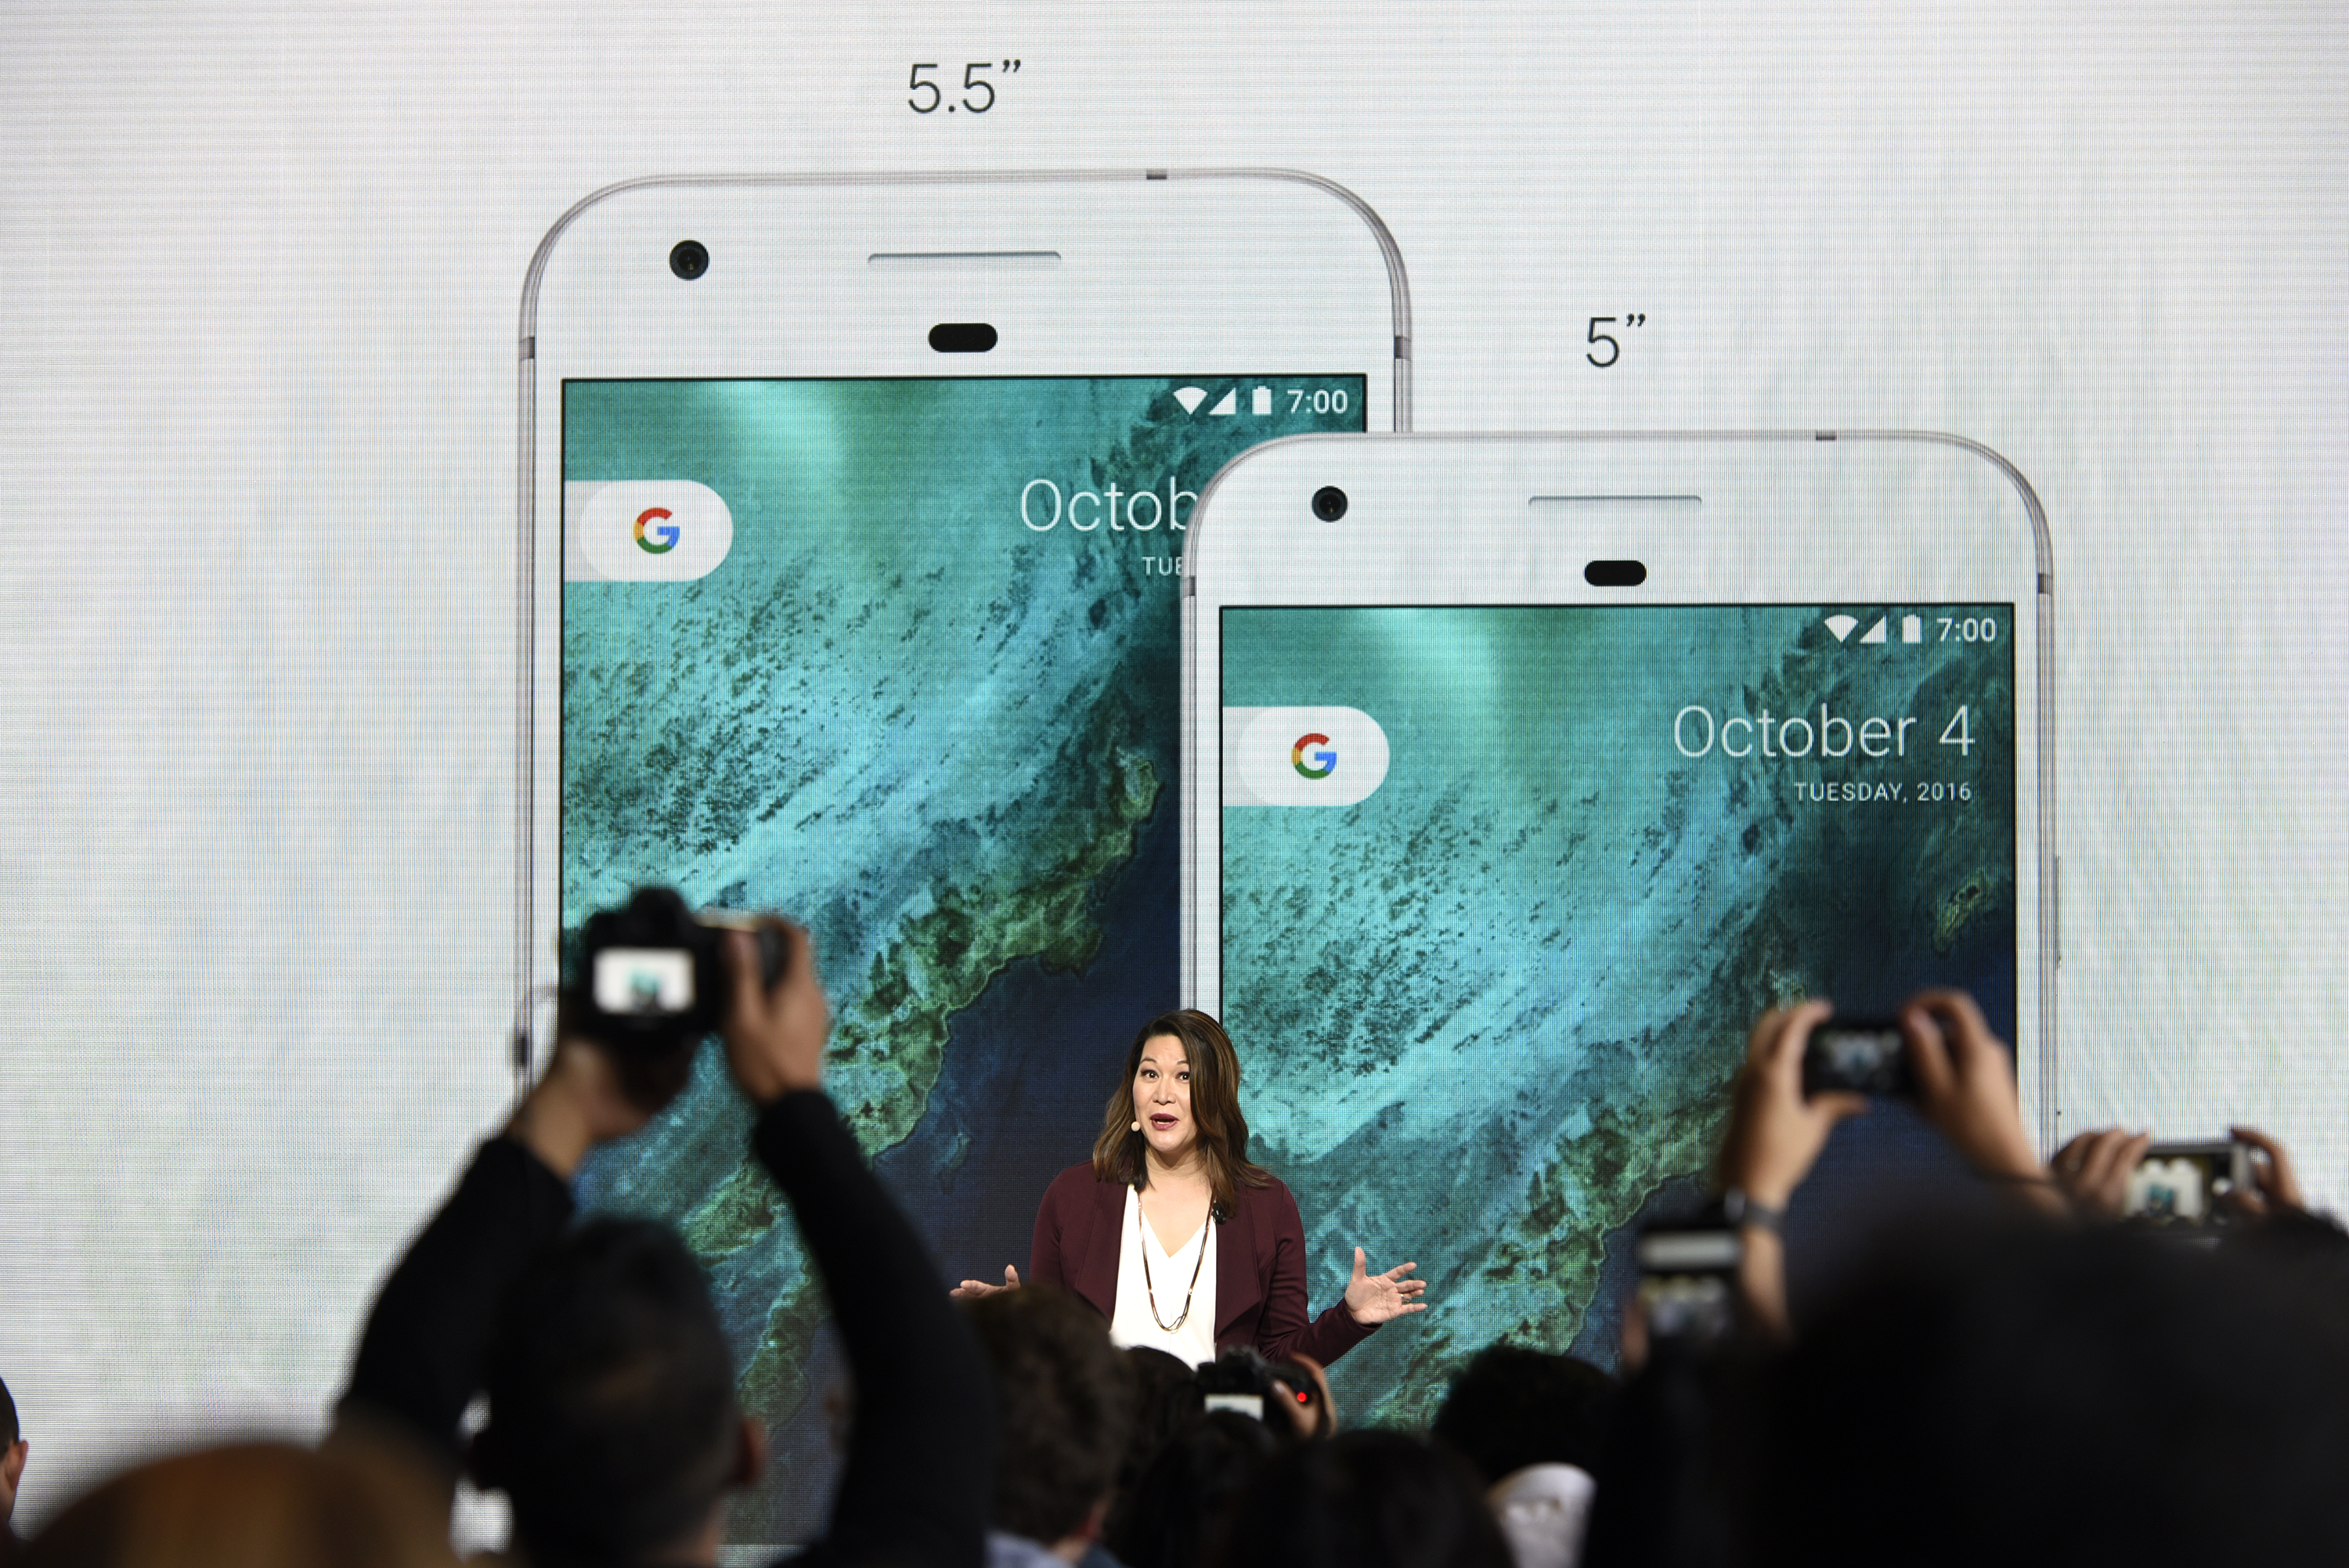 Sabrina Ellis, director of product management for Google Inc., discusses the Google Pixel and Pixel XL smartphones during a Google product launch event in San Francisco, California, U.S., on Tuesday, Oct. 4, 2016.